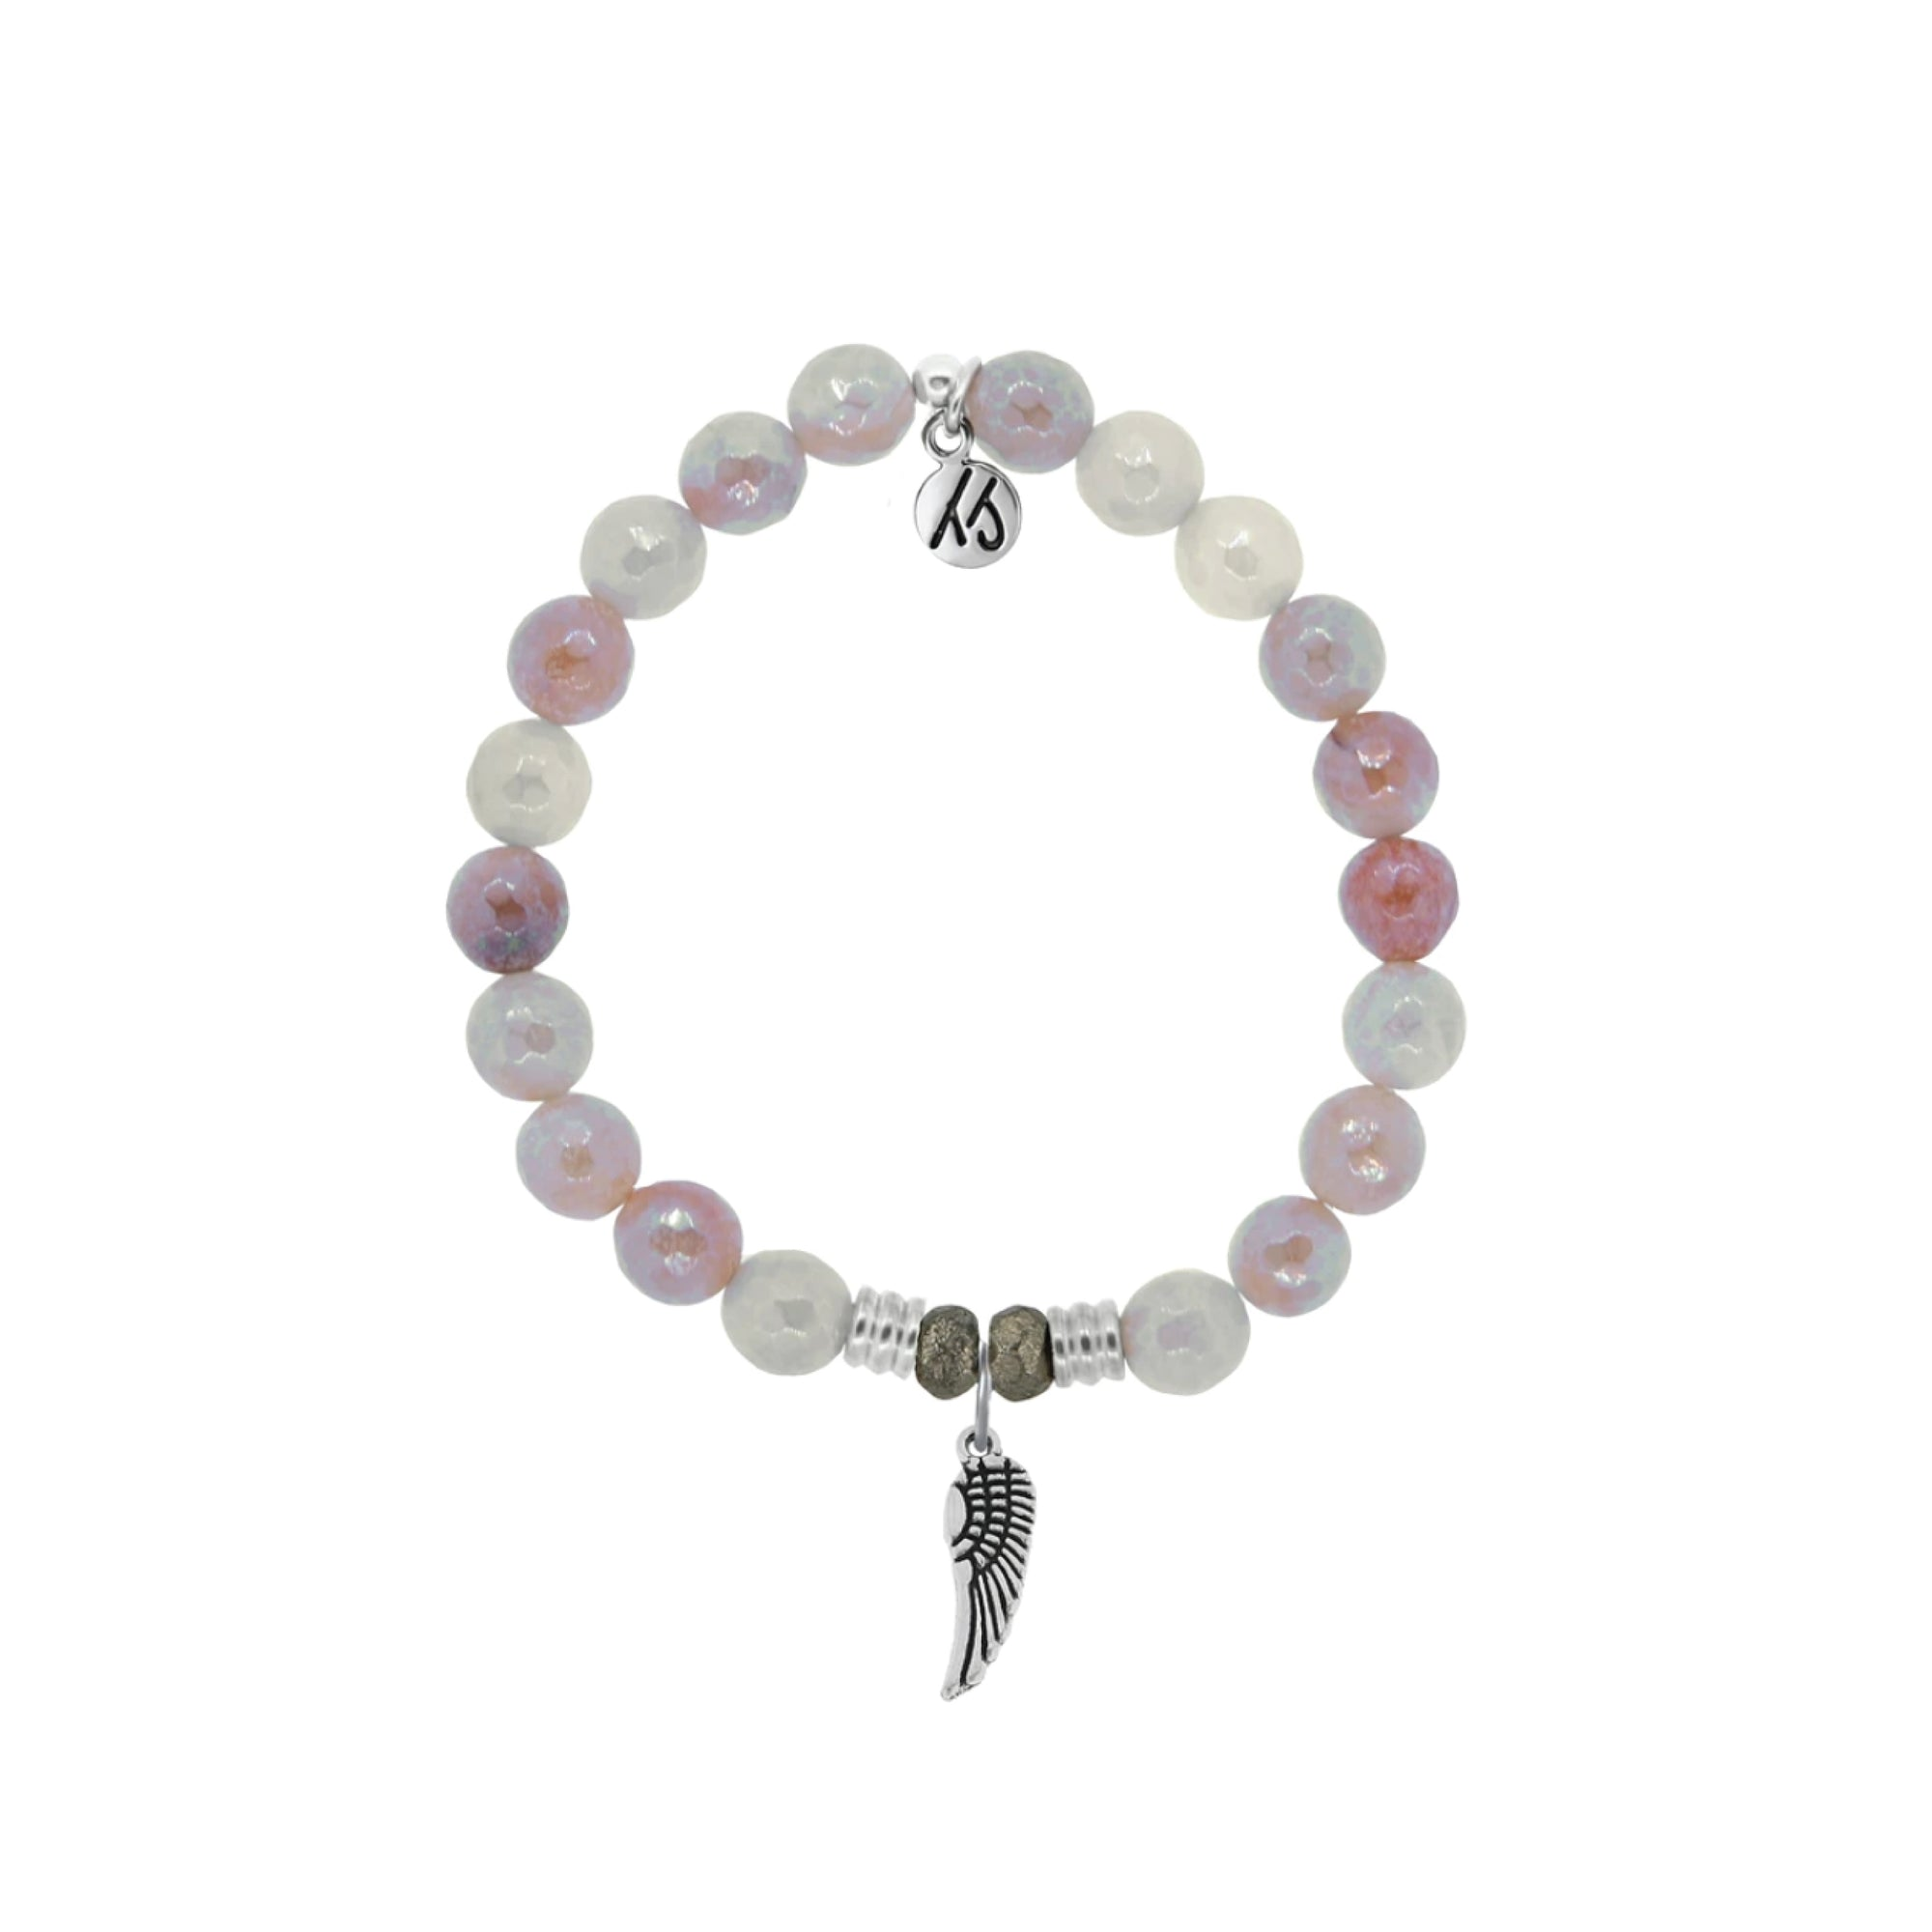 An Angel Wing is known to have the symbolic meaning of faith, renewal, protection and love. Wear your Angel Wing Amethyst charm bracelet as a reminder that your guardian angel is always with you.